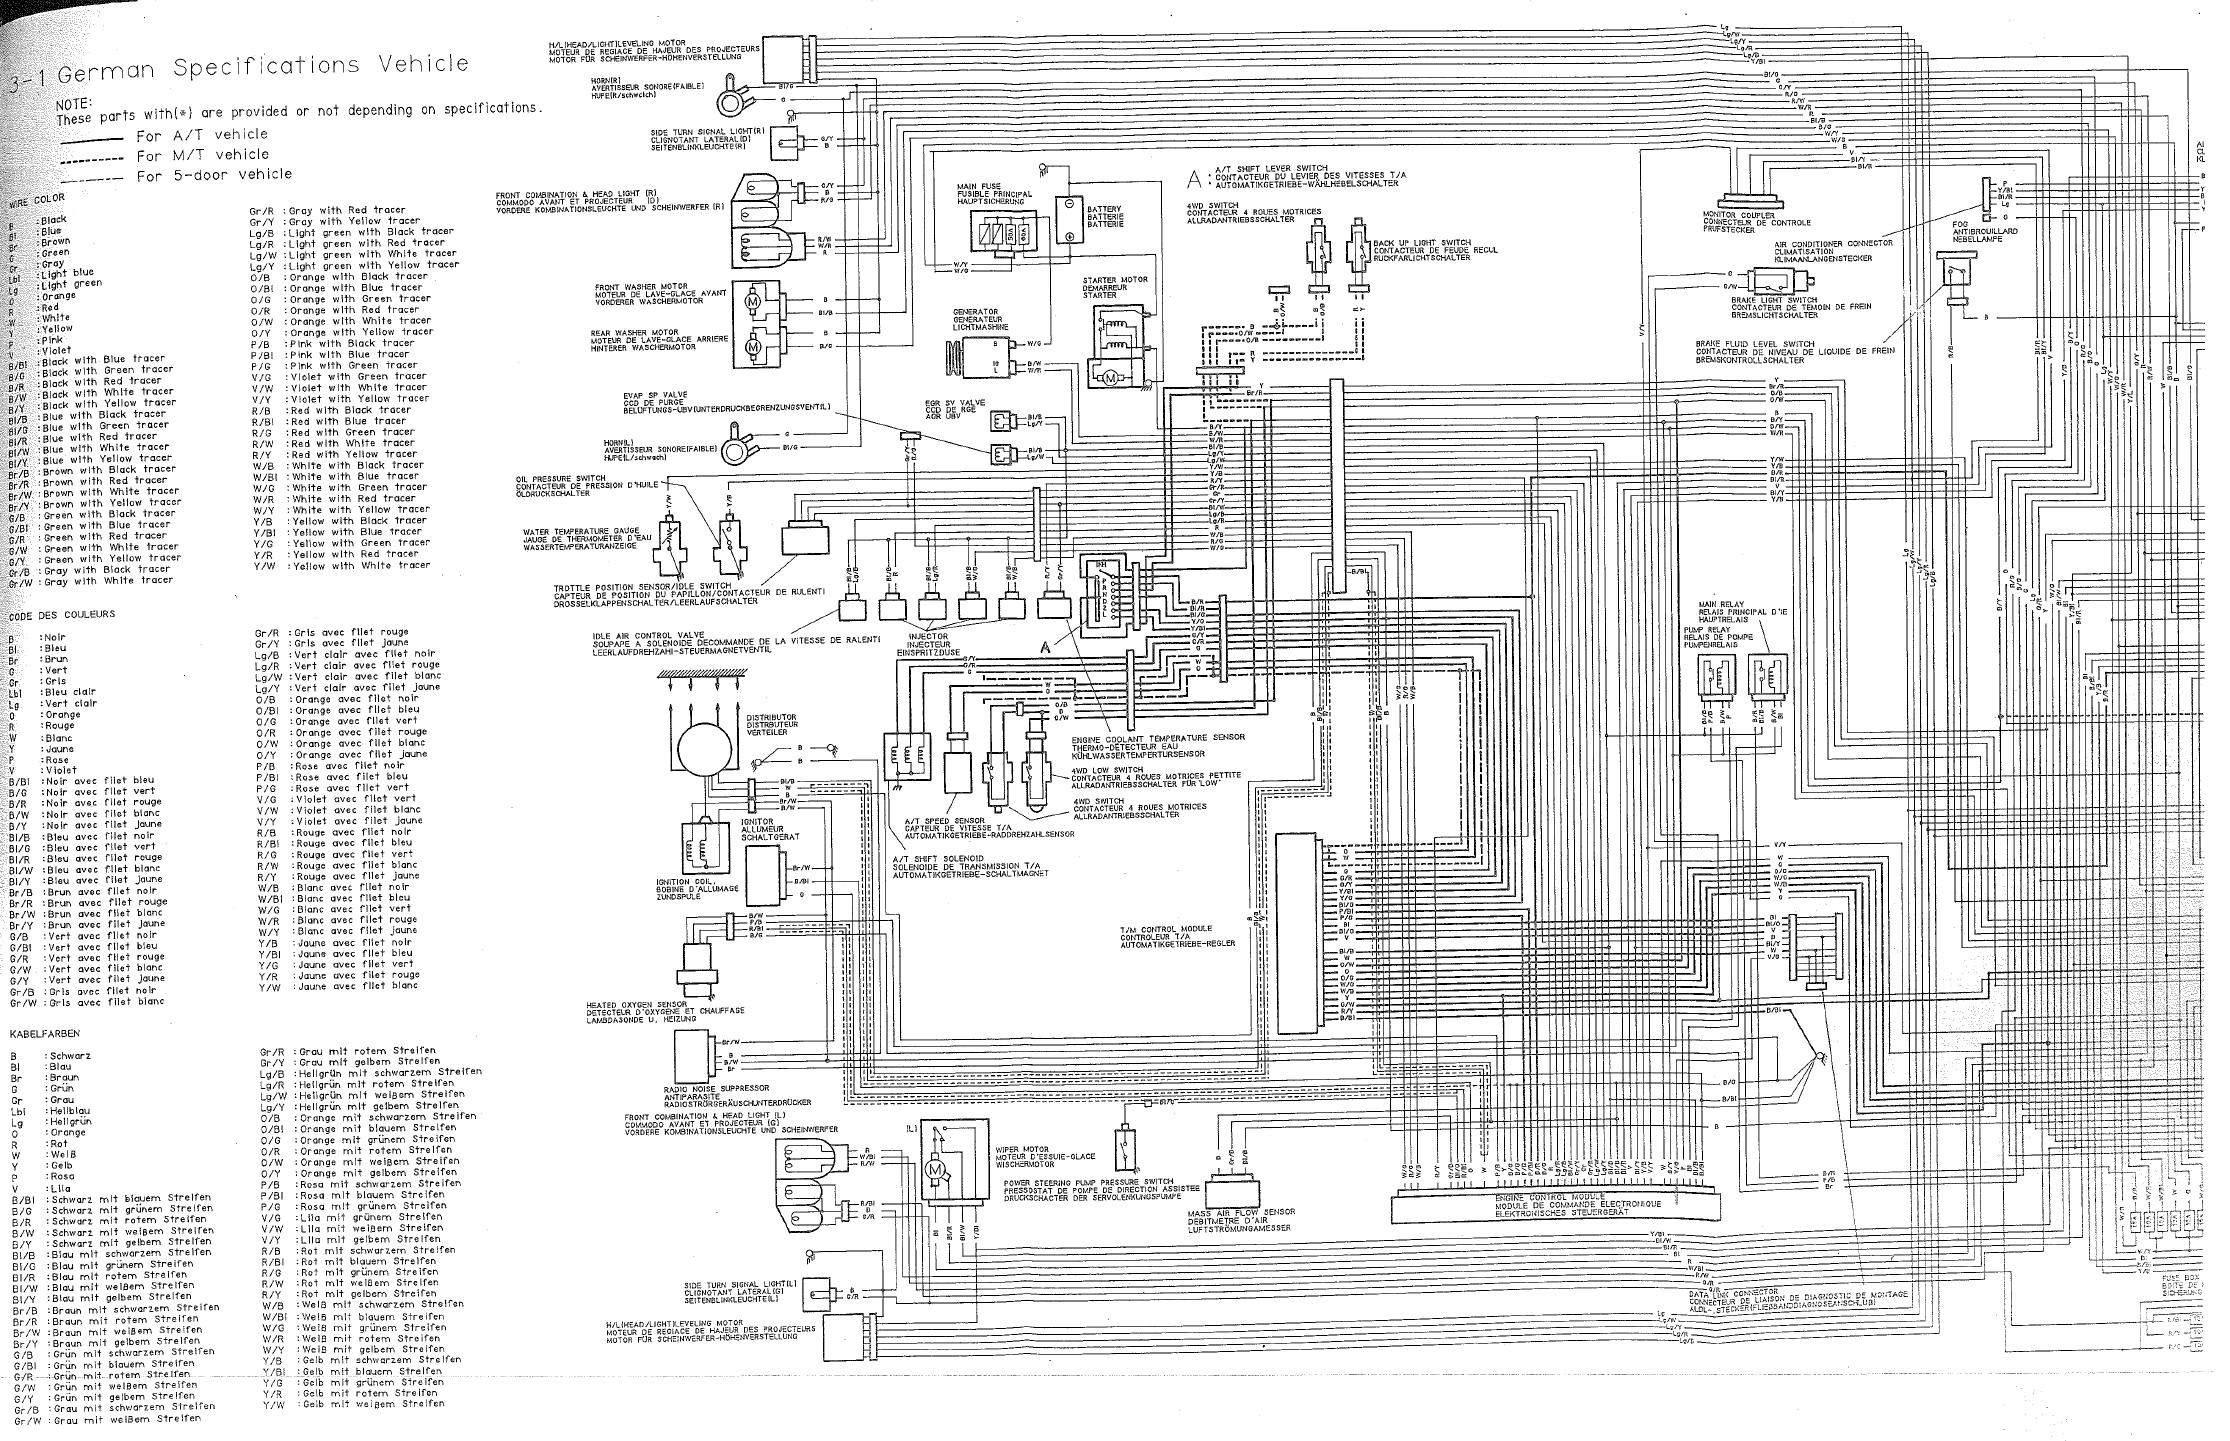 Suzuki Samurai Air Conditioning Wiring Diagram Modern Design Of Diagrams Motorcycle Cooling Fan General Electric Vitara Electrical Car Rh 27 Jennifer Retzke De 1988 Carburetor